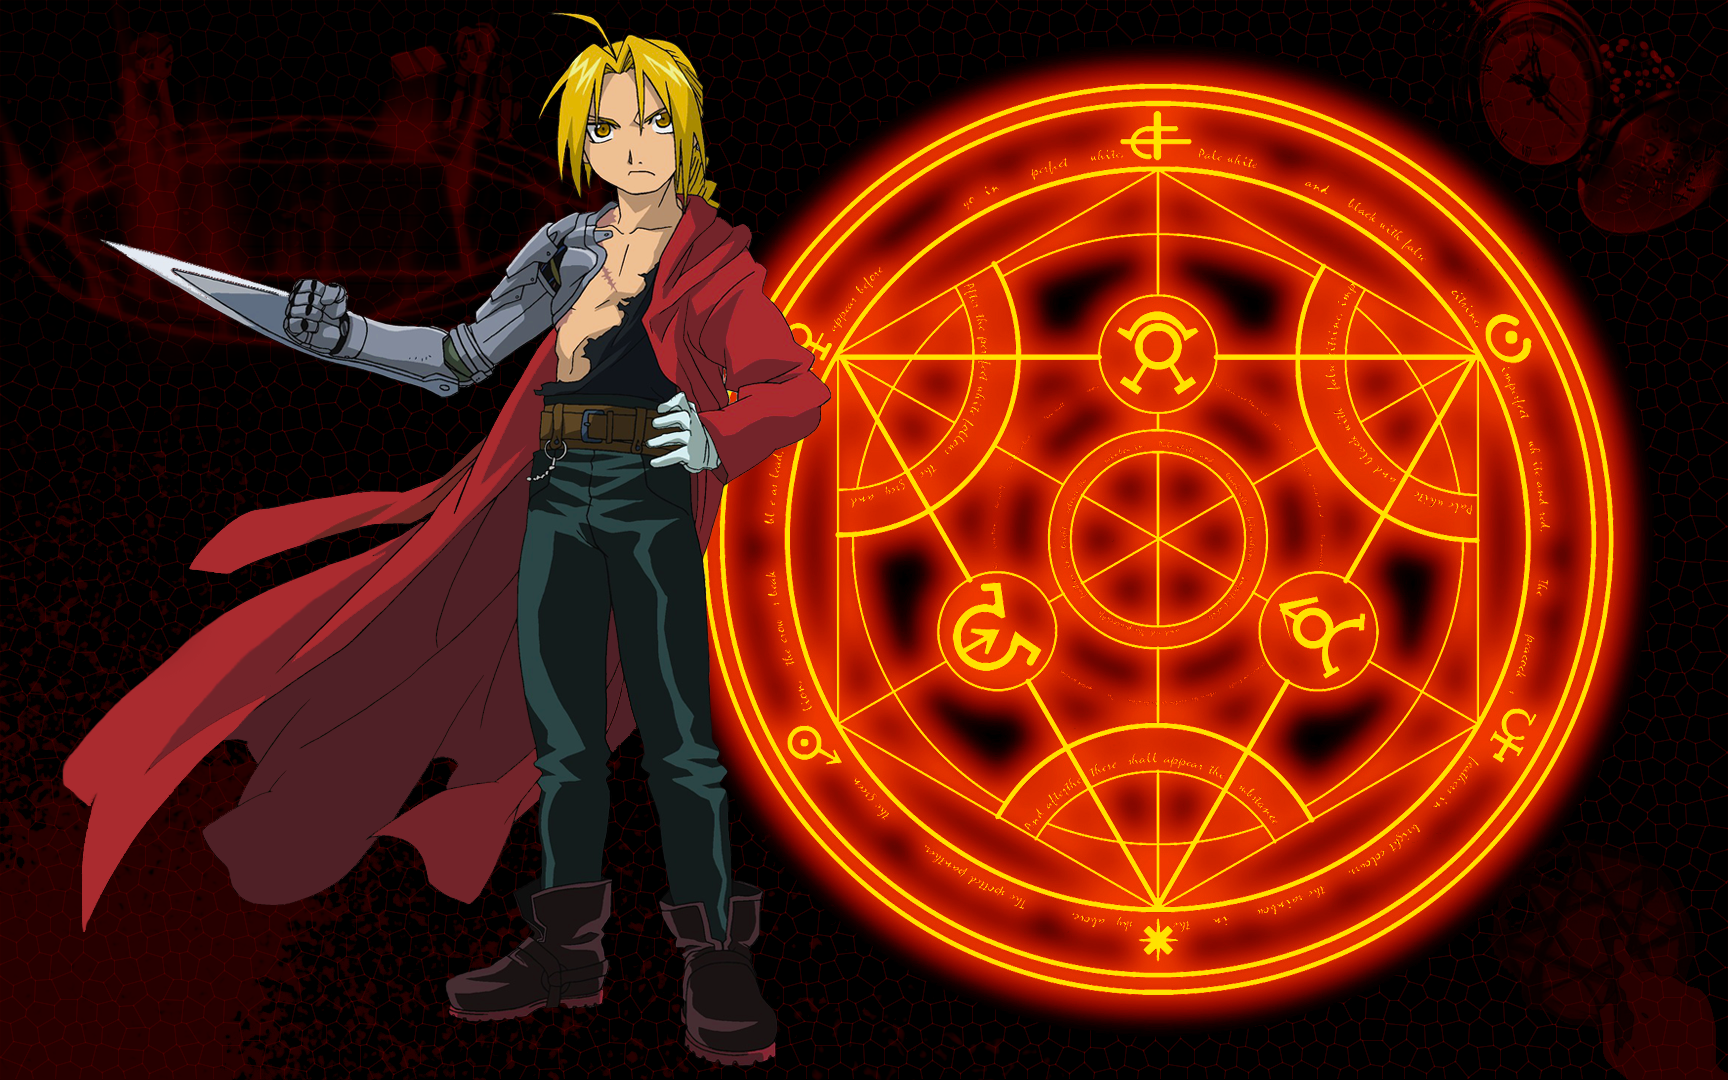 Fullmetal Alchemist Wallpaper Edward by Polarnacht 1728x1080